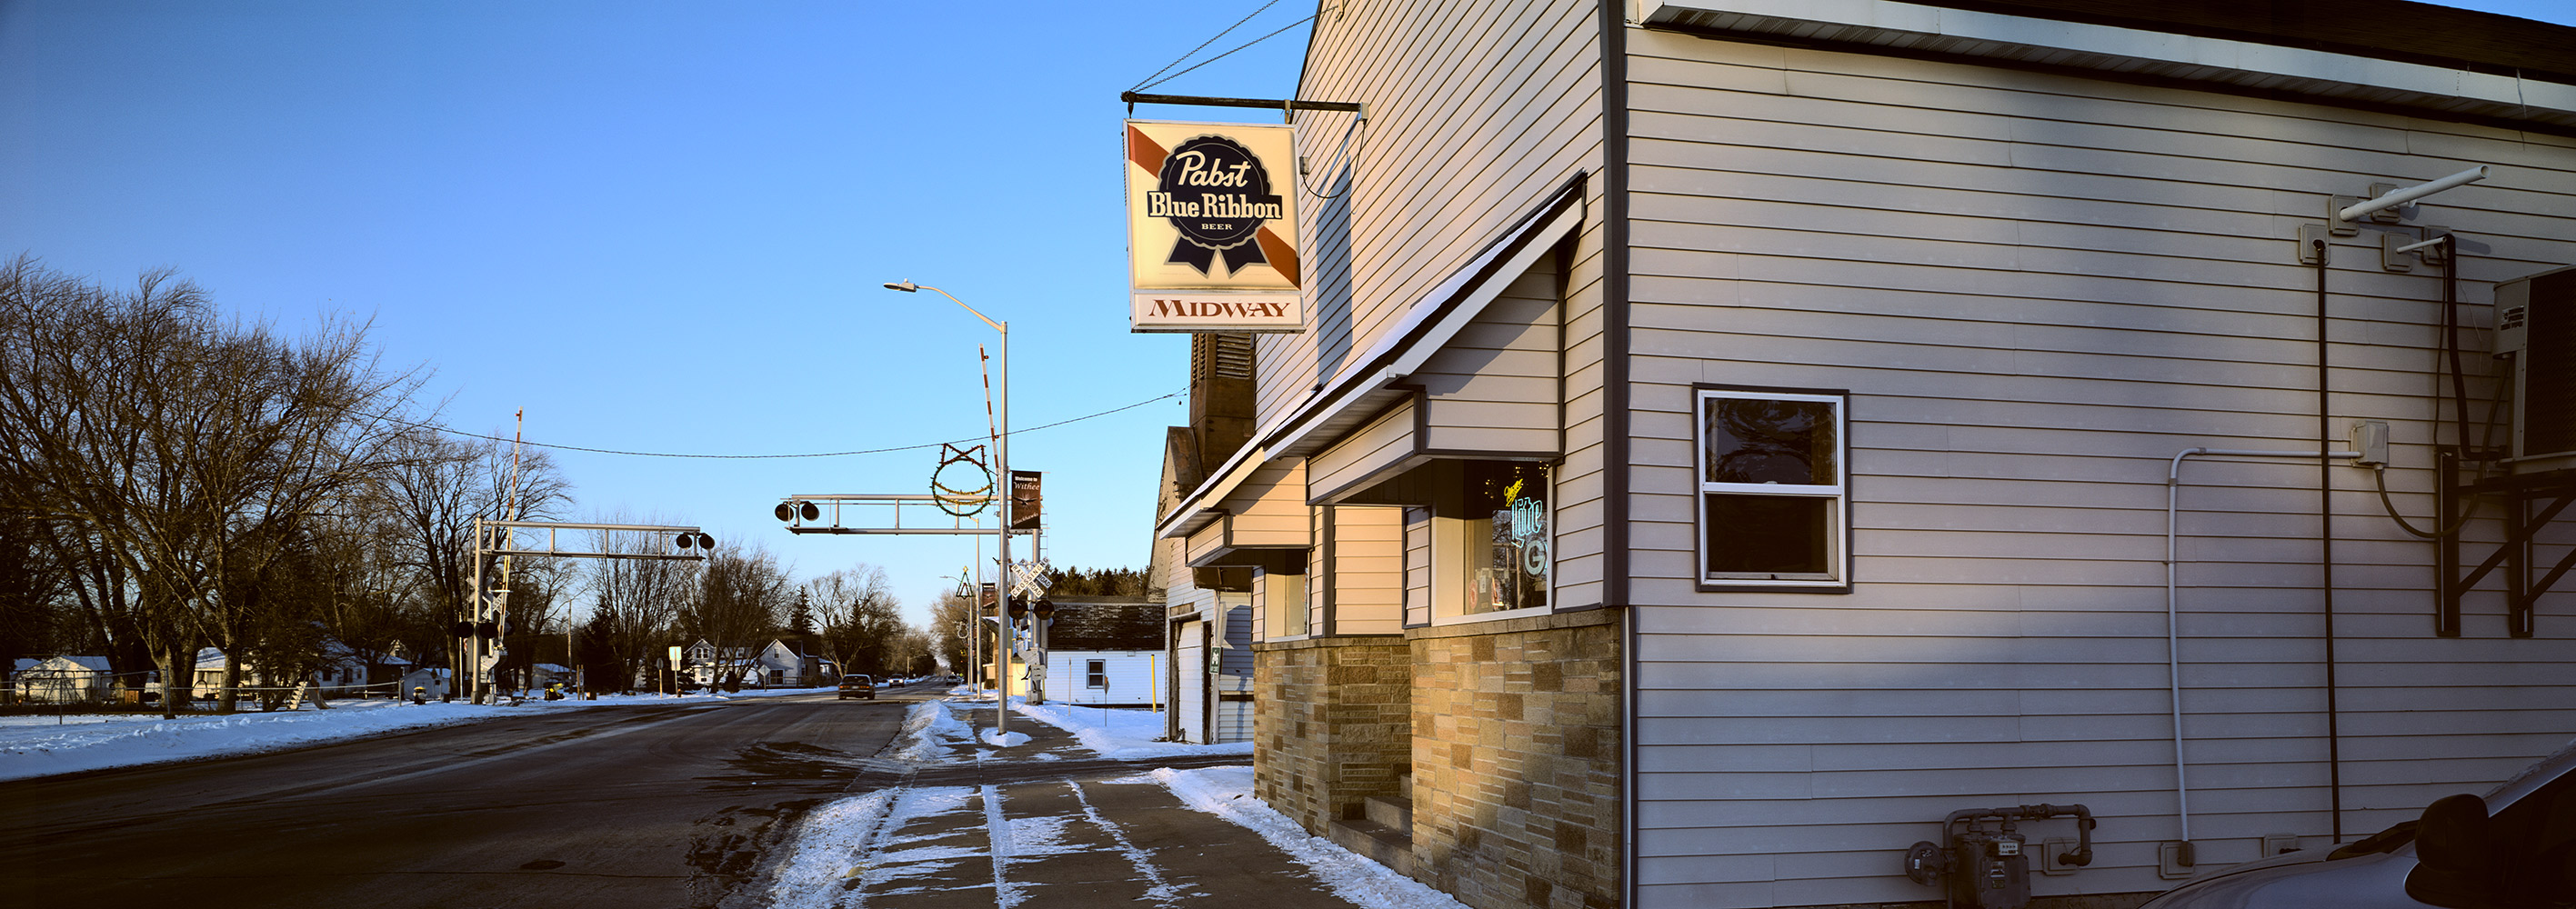 Midway Bar, Withee, Wisconsin, December 2017